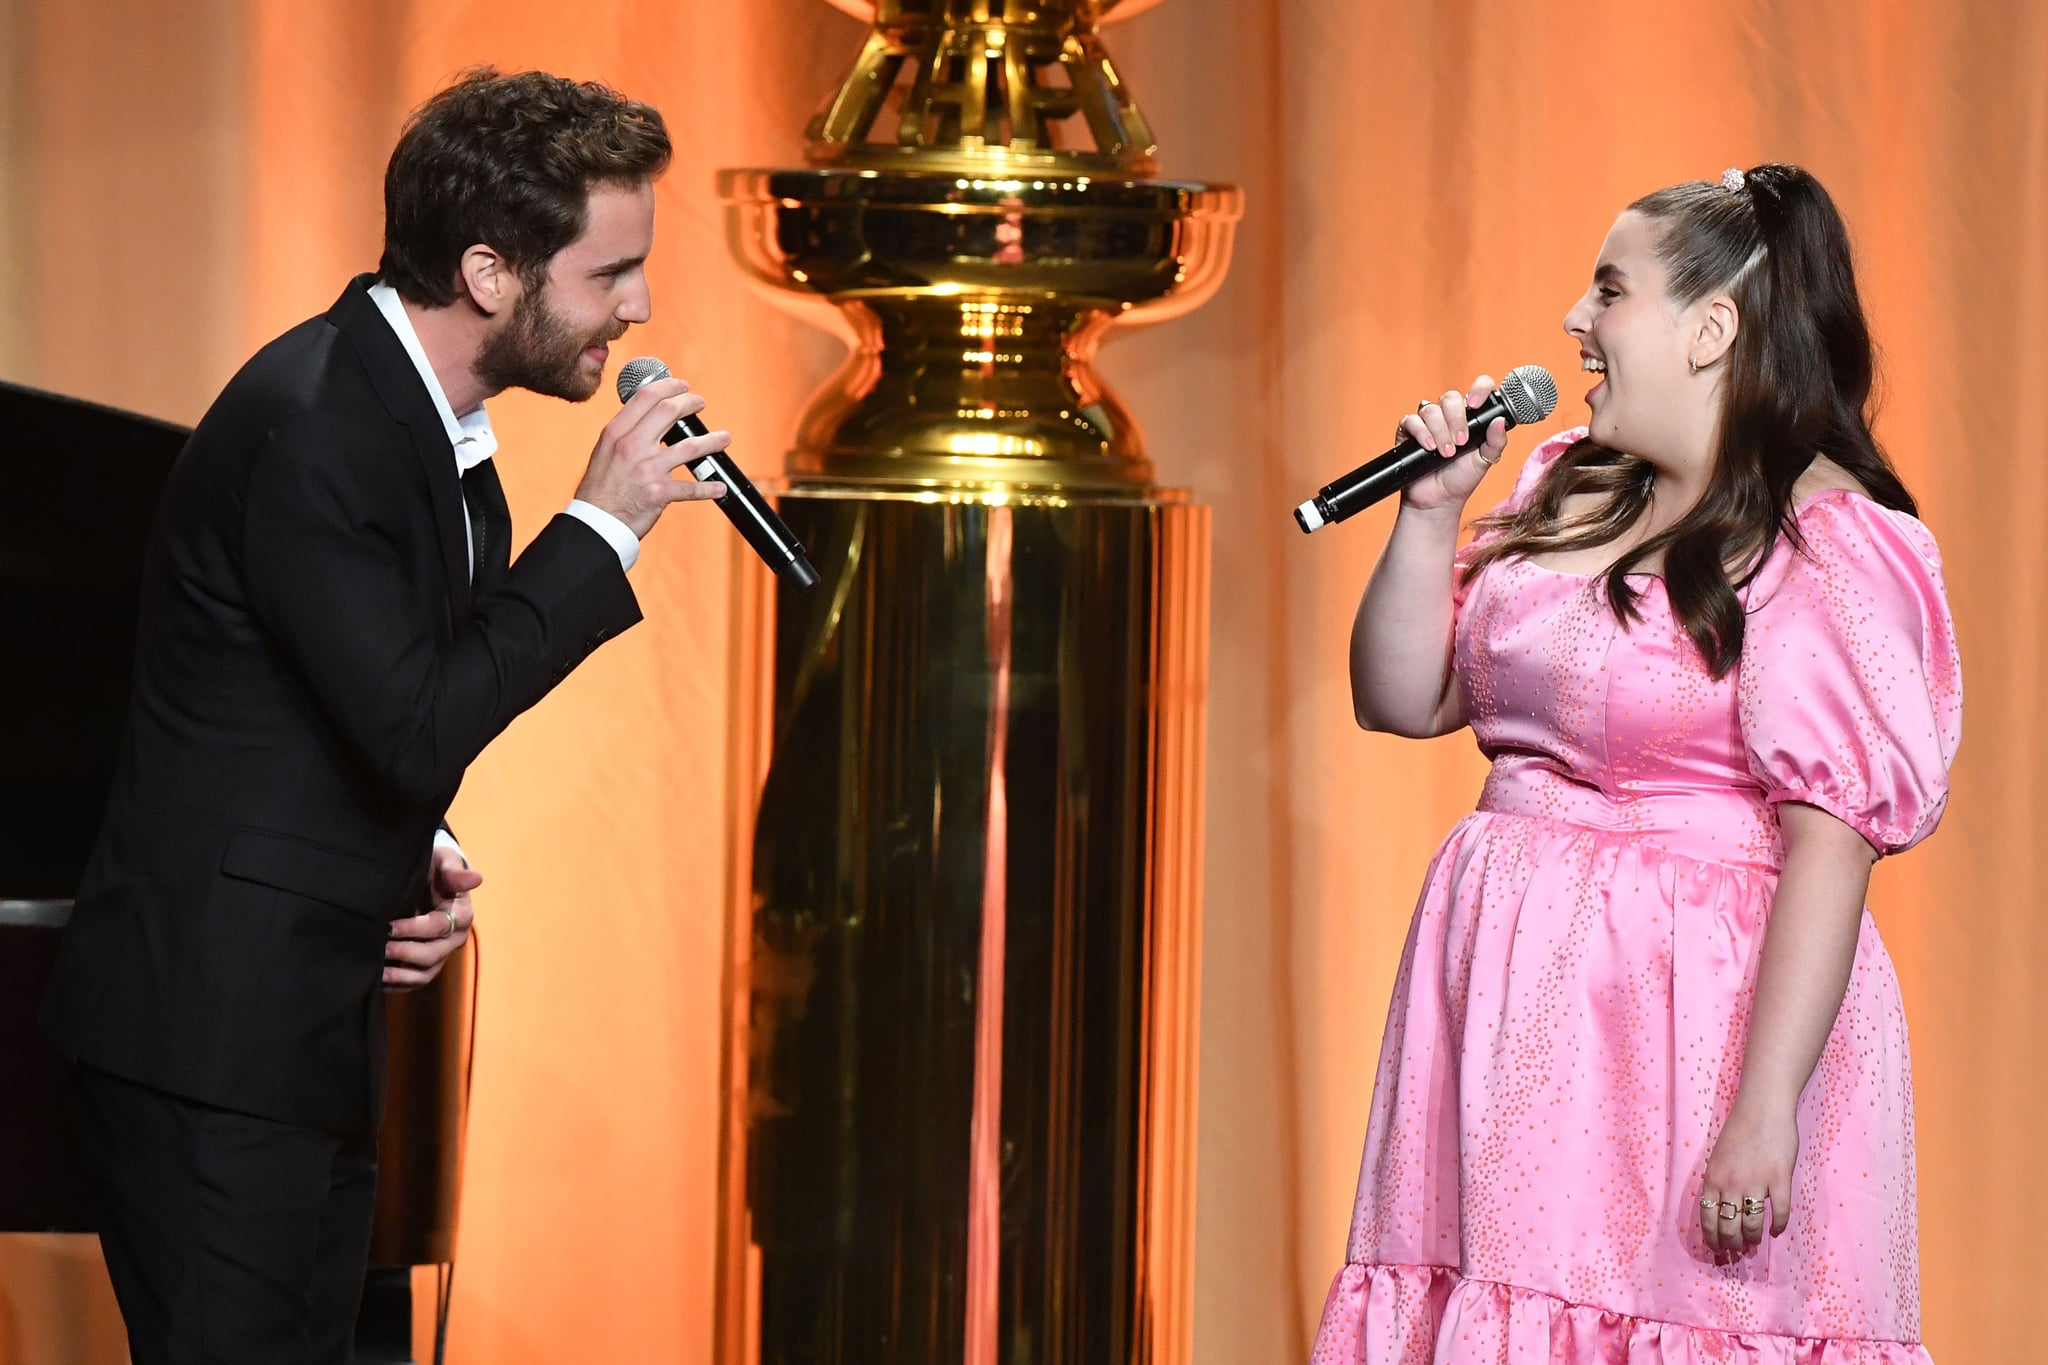 US actress Beanie Feldstein and US actor Ben Platt perform on stage during the Hollywood Foreign Press Association Annual Grants Banquet at The Beverly Wilshire, in Beverly Hills on July 31, 2019. (Photo by Valerie MACON / AFP)        (Photo credit should read VALERIE MACON/AFP/Getty Images)